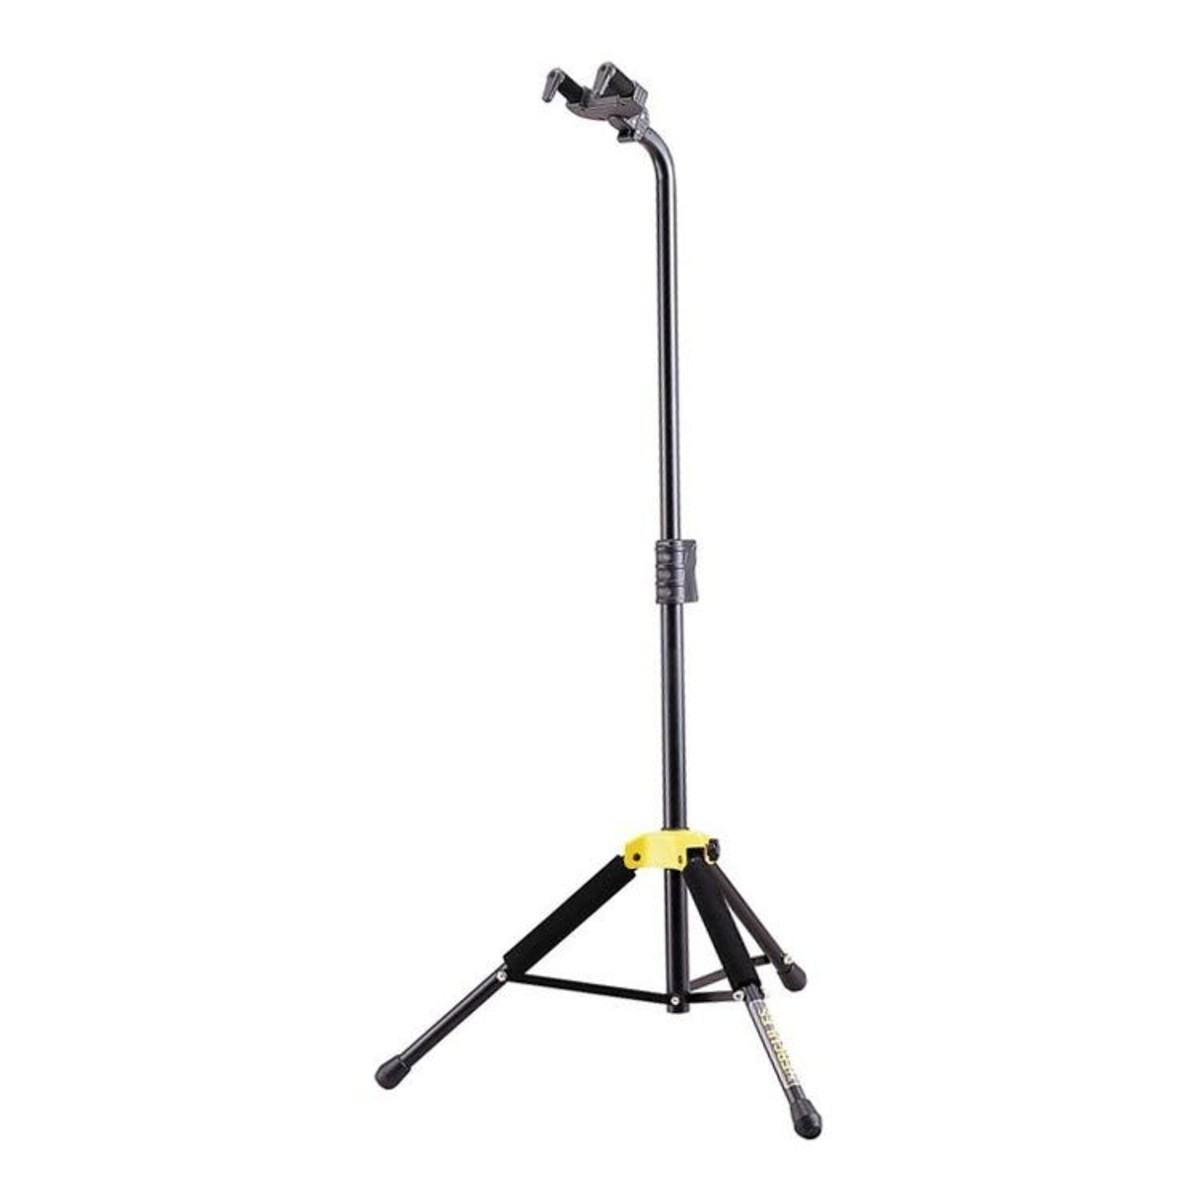 Image of Hercules AGS (Auto Grip System) Guitar Stand